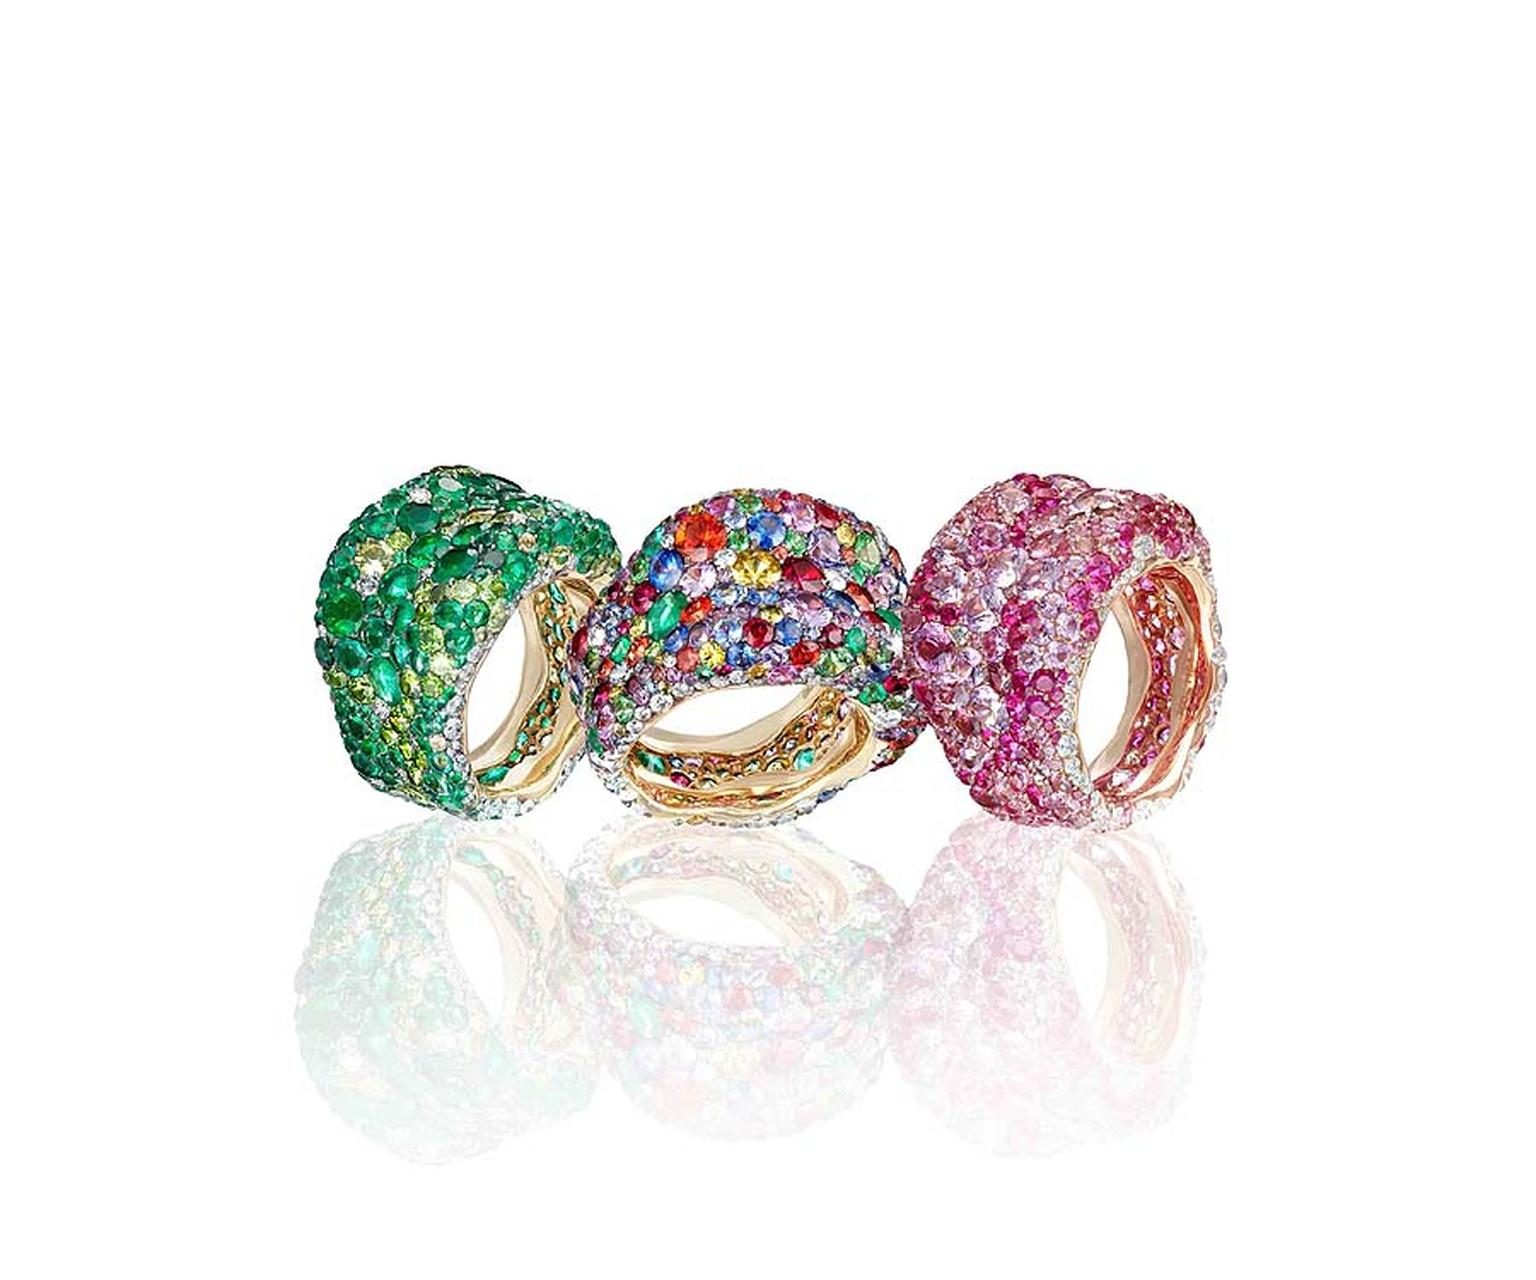 FabergeEmotionrings005